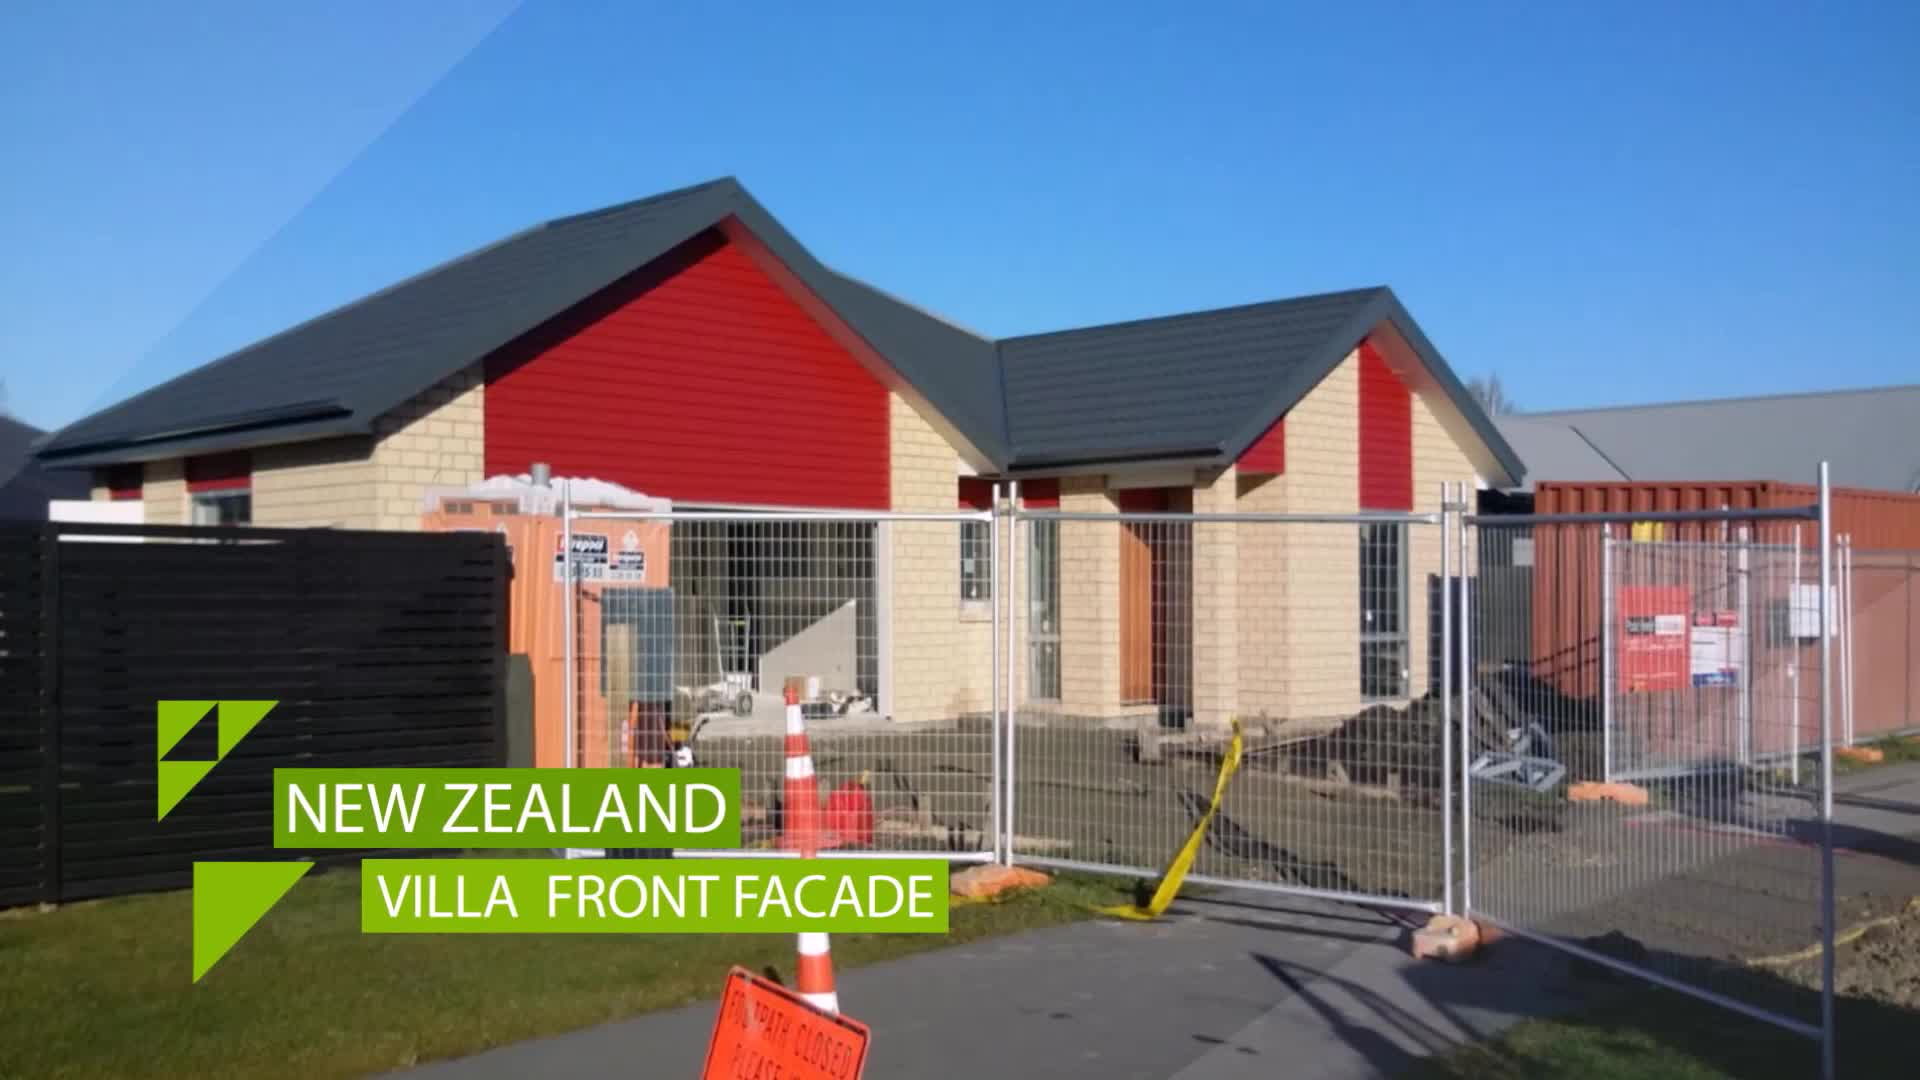 Modular new zealand low cost prefab duplex villa buy for Estimated cost building duplex